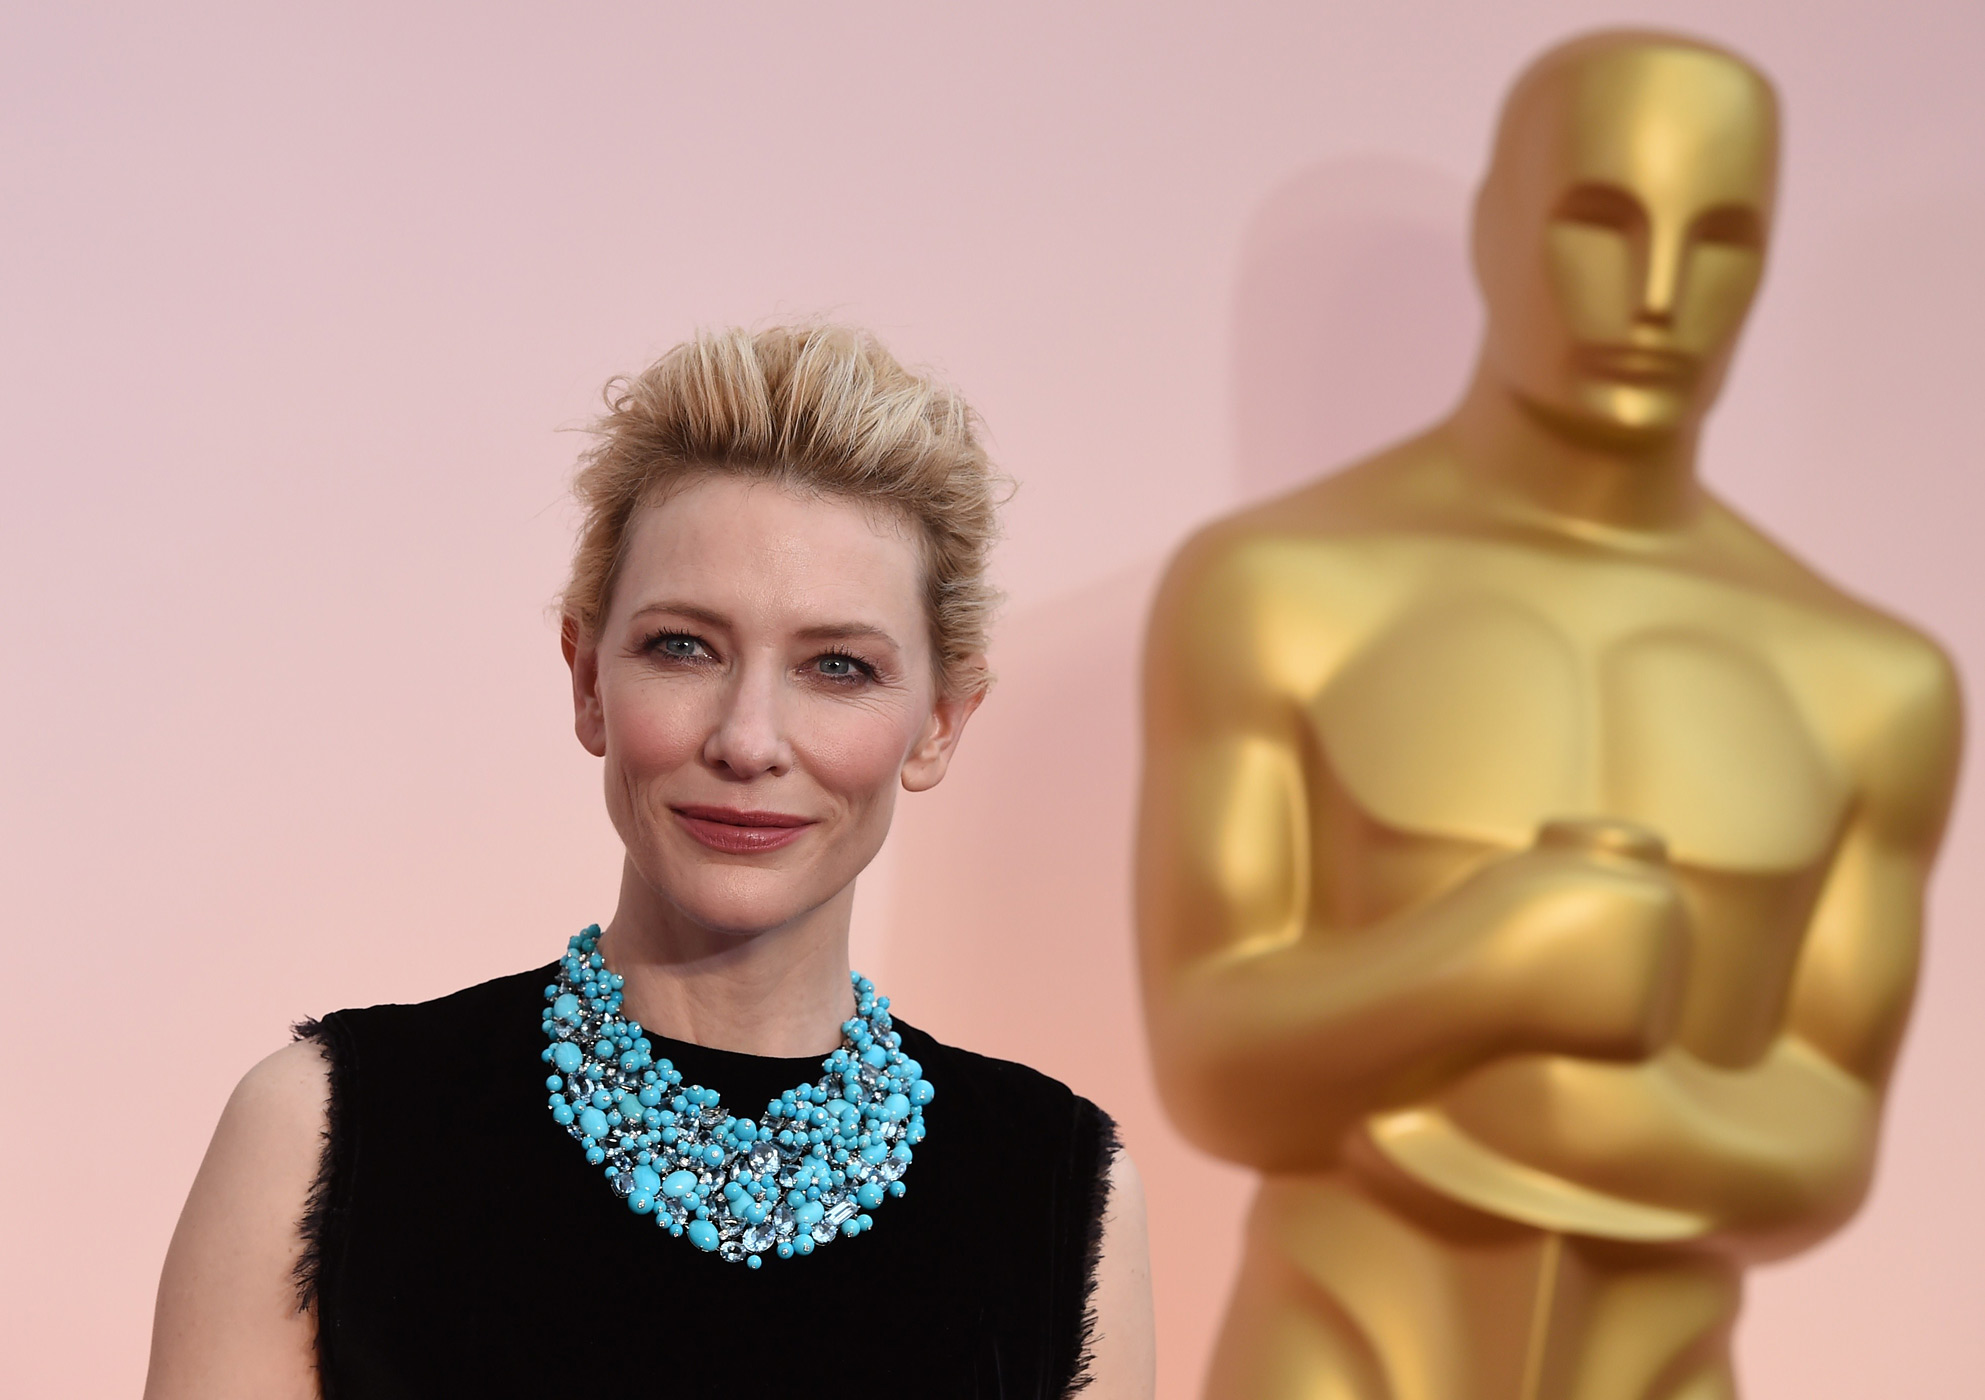 Cate Blanchett attends the 87th Annual Academy Awards on Feb. 22, 2015 in Hollywood, Calif.